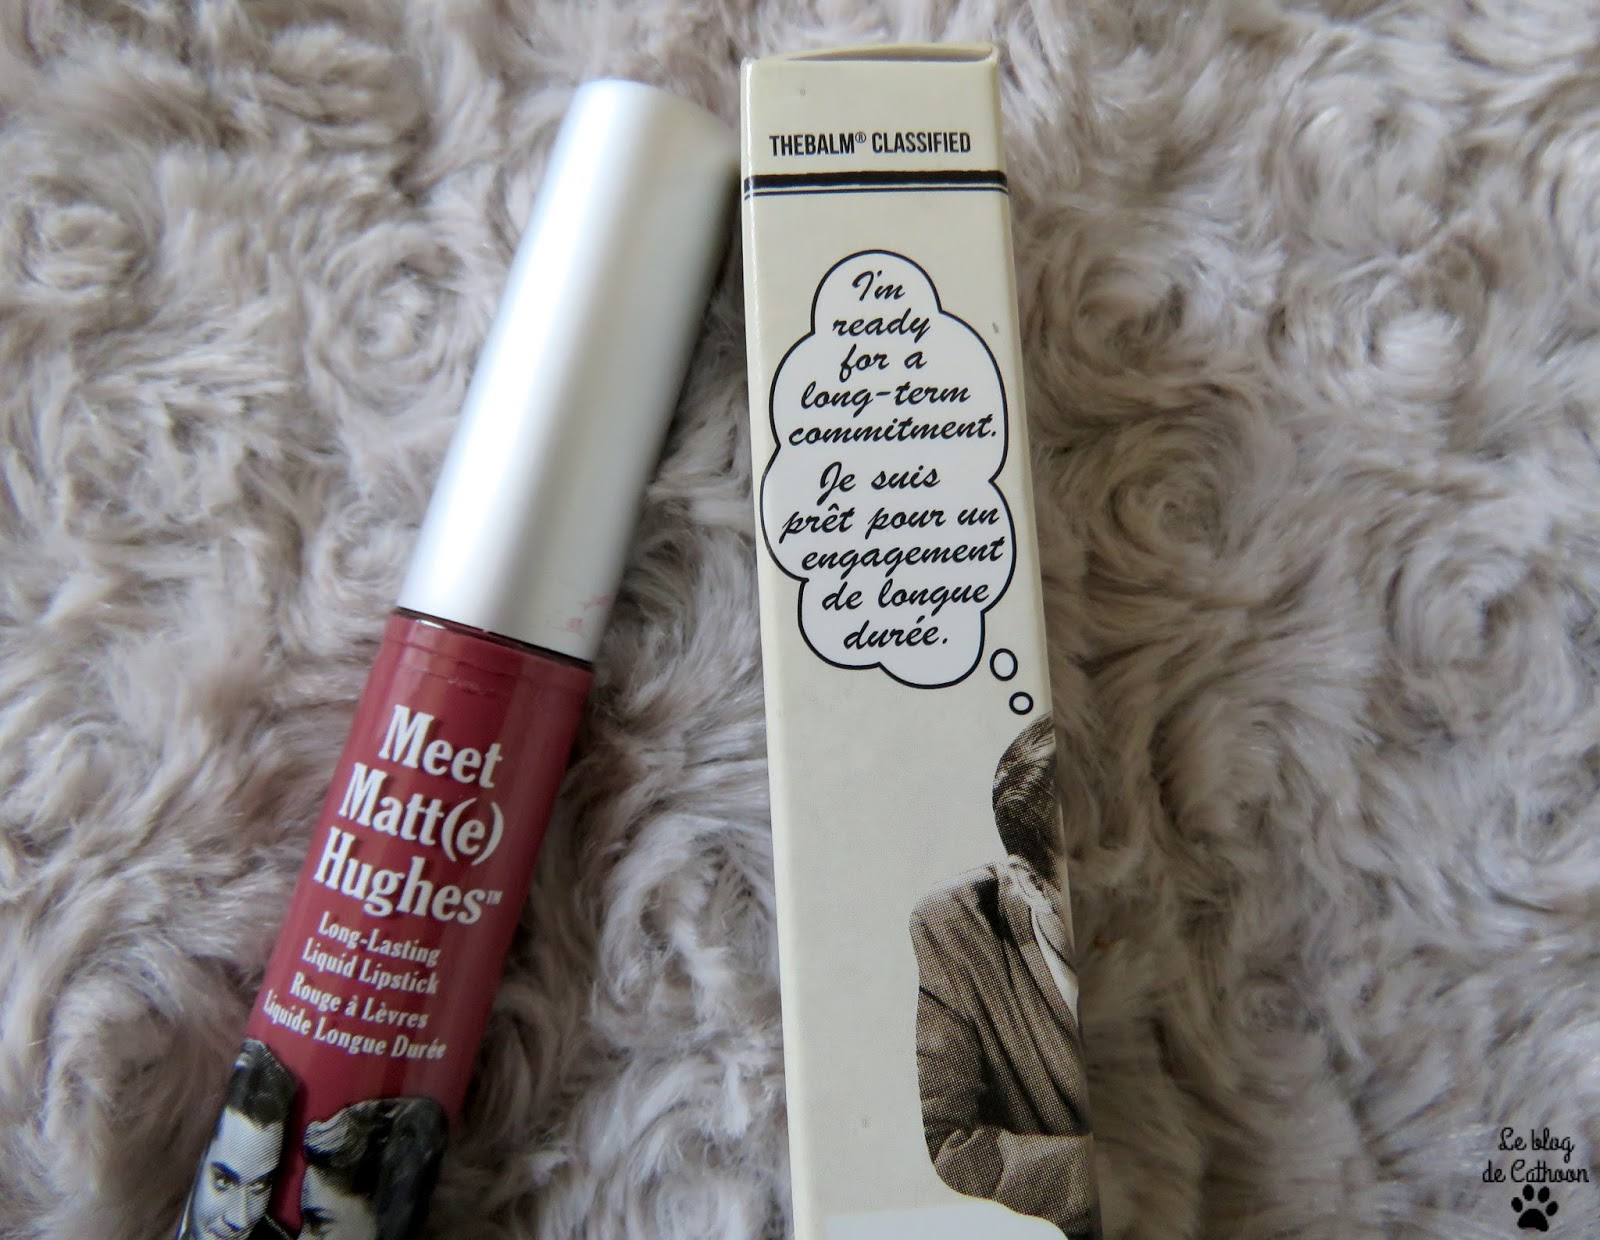 Charming - Meet Matt(e) Hughes - The Balm